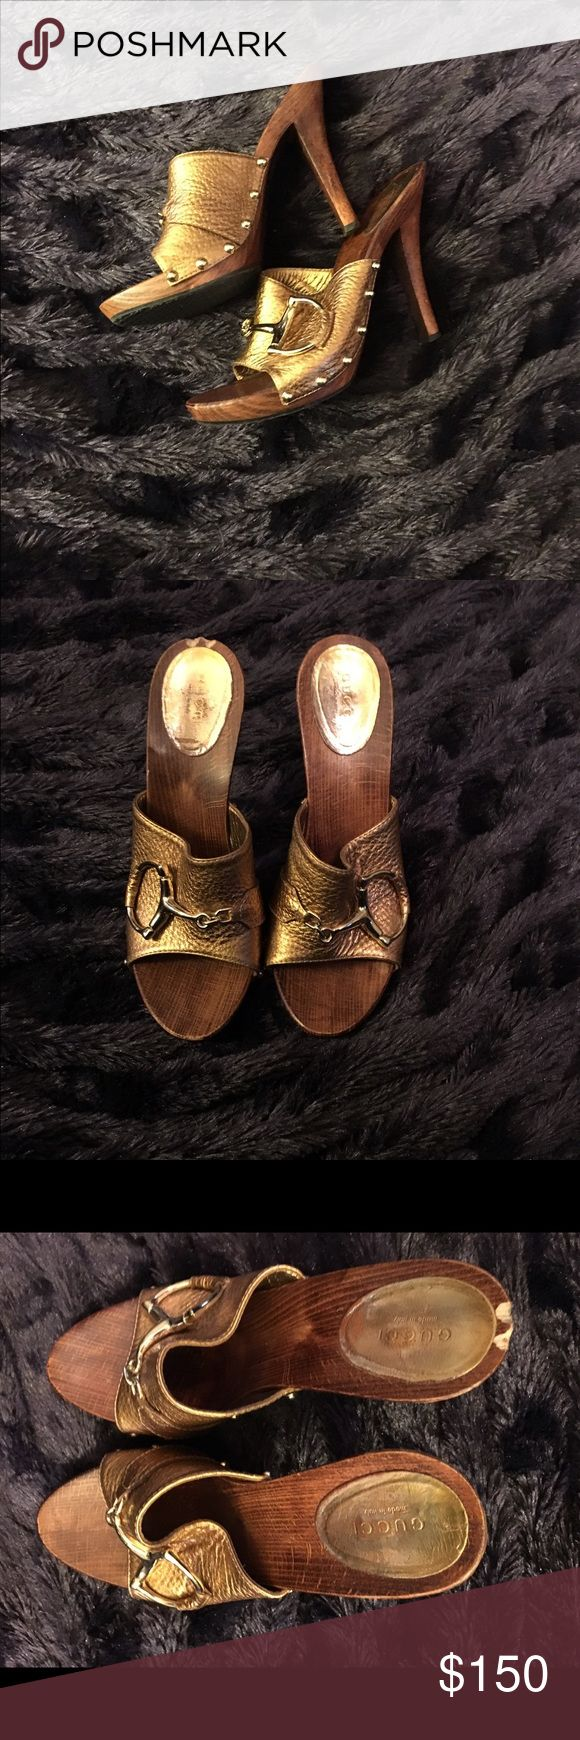 """Gucci Bronze Size 8/81/2 Studded High Heel Clogs Gucci Horsebit Bronze Size 8/81/2 Studded High Heel Clogs - 5"""" in Height. Slight damage on wood back of one seen in photo but not when wearing. Super cute. Gucci Shoes Mules & Clogs"""